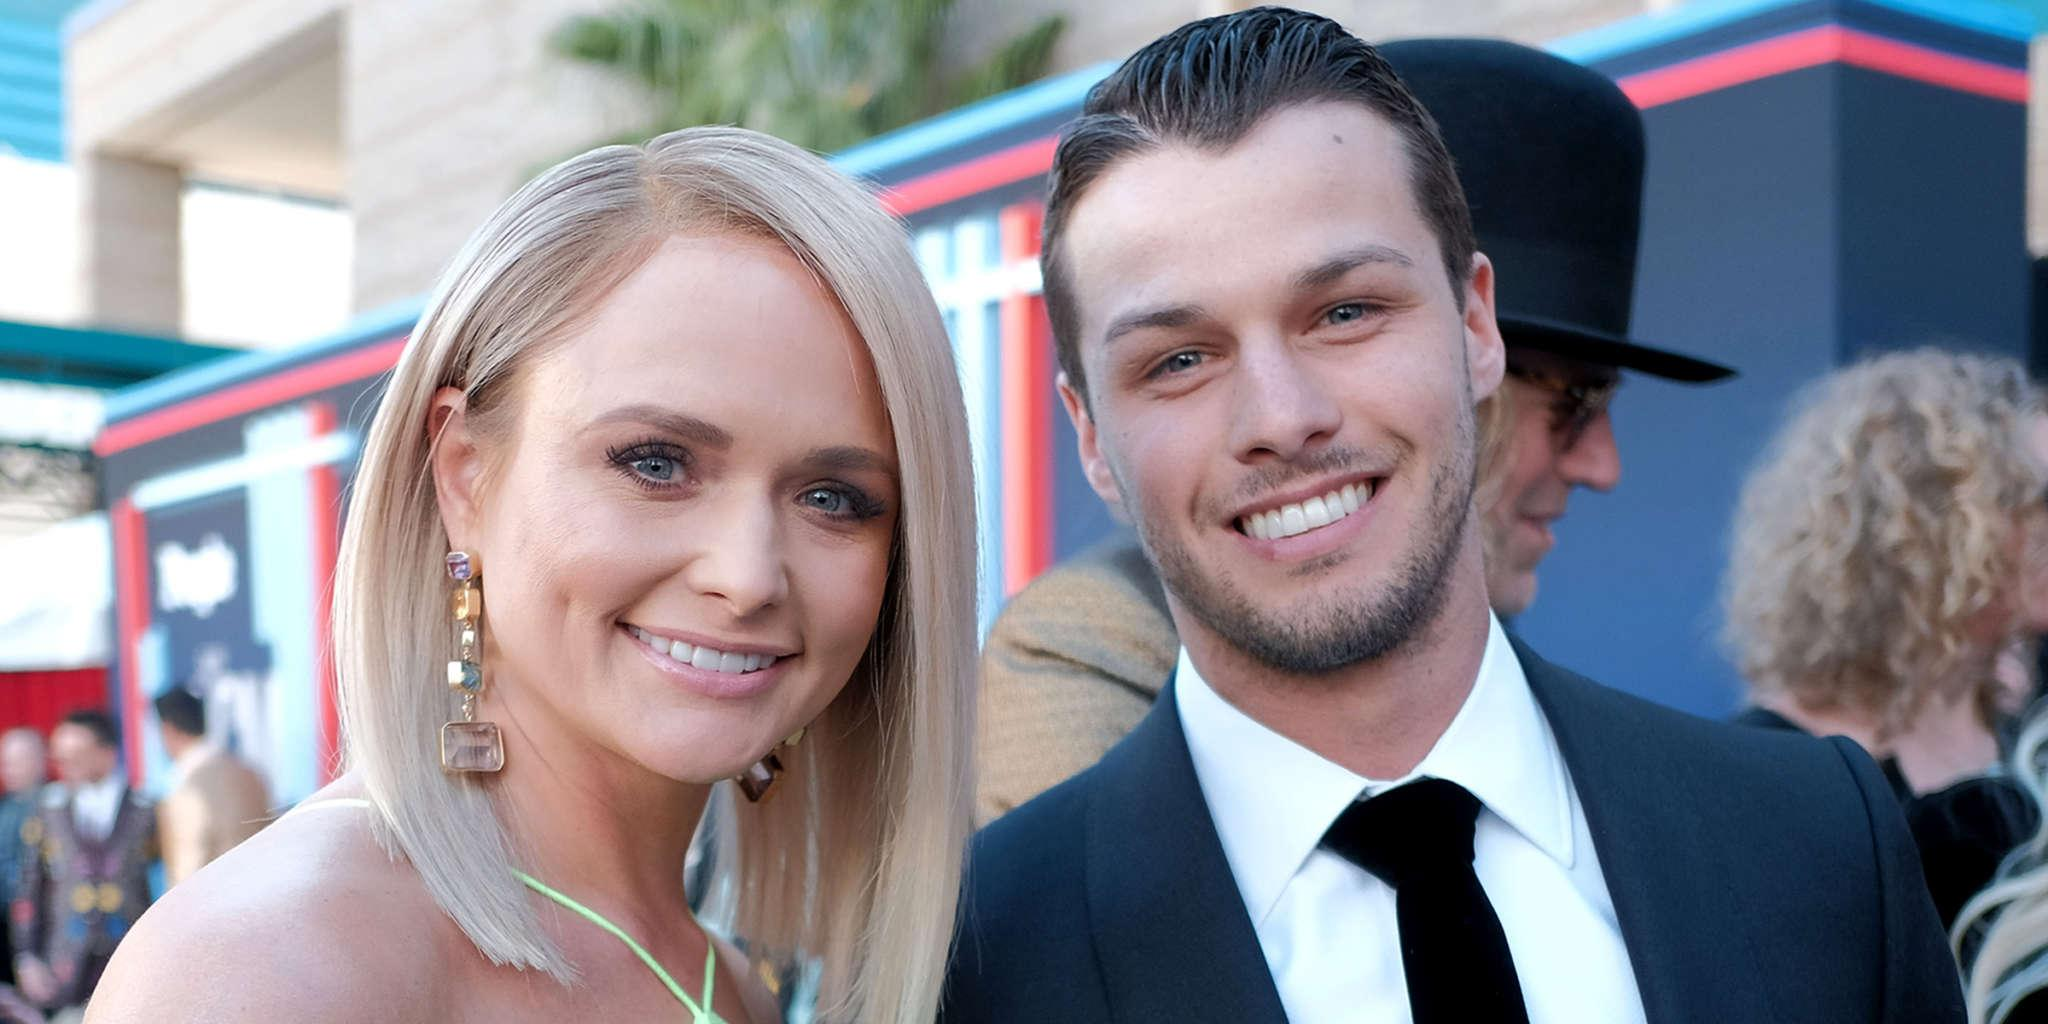 Miranda Lambert Raves Over Her Hunky Husband During Concert - See The Video